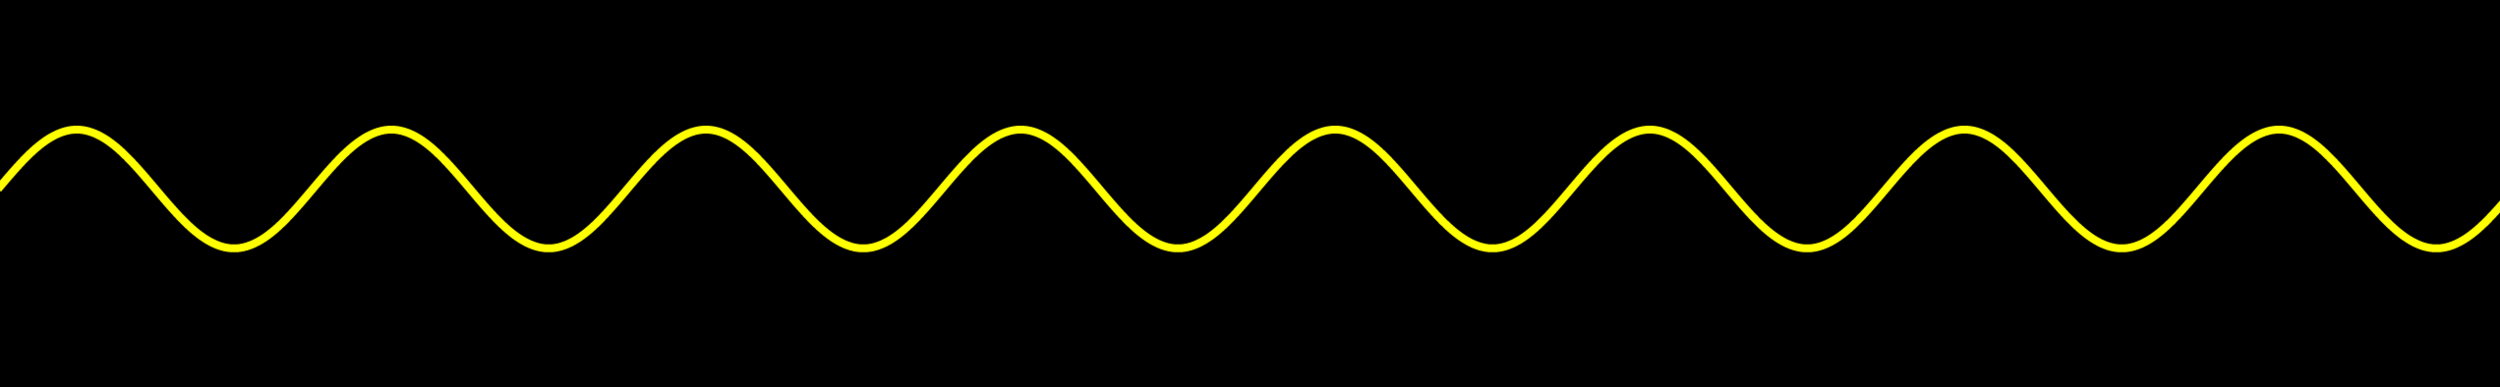 wave_yellow-2x.png